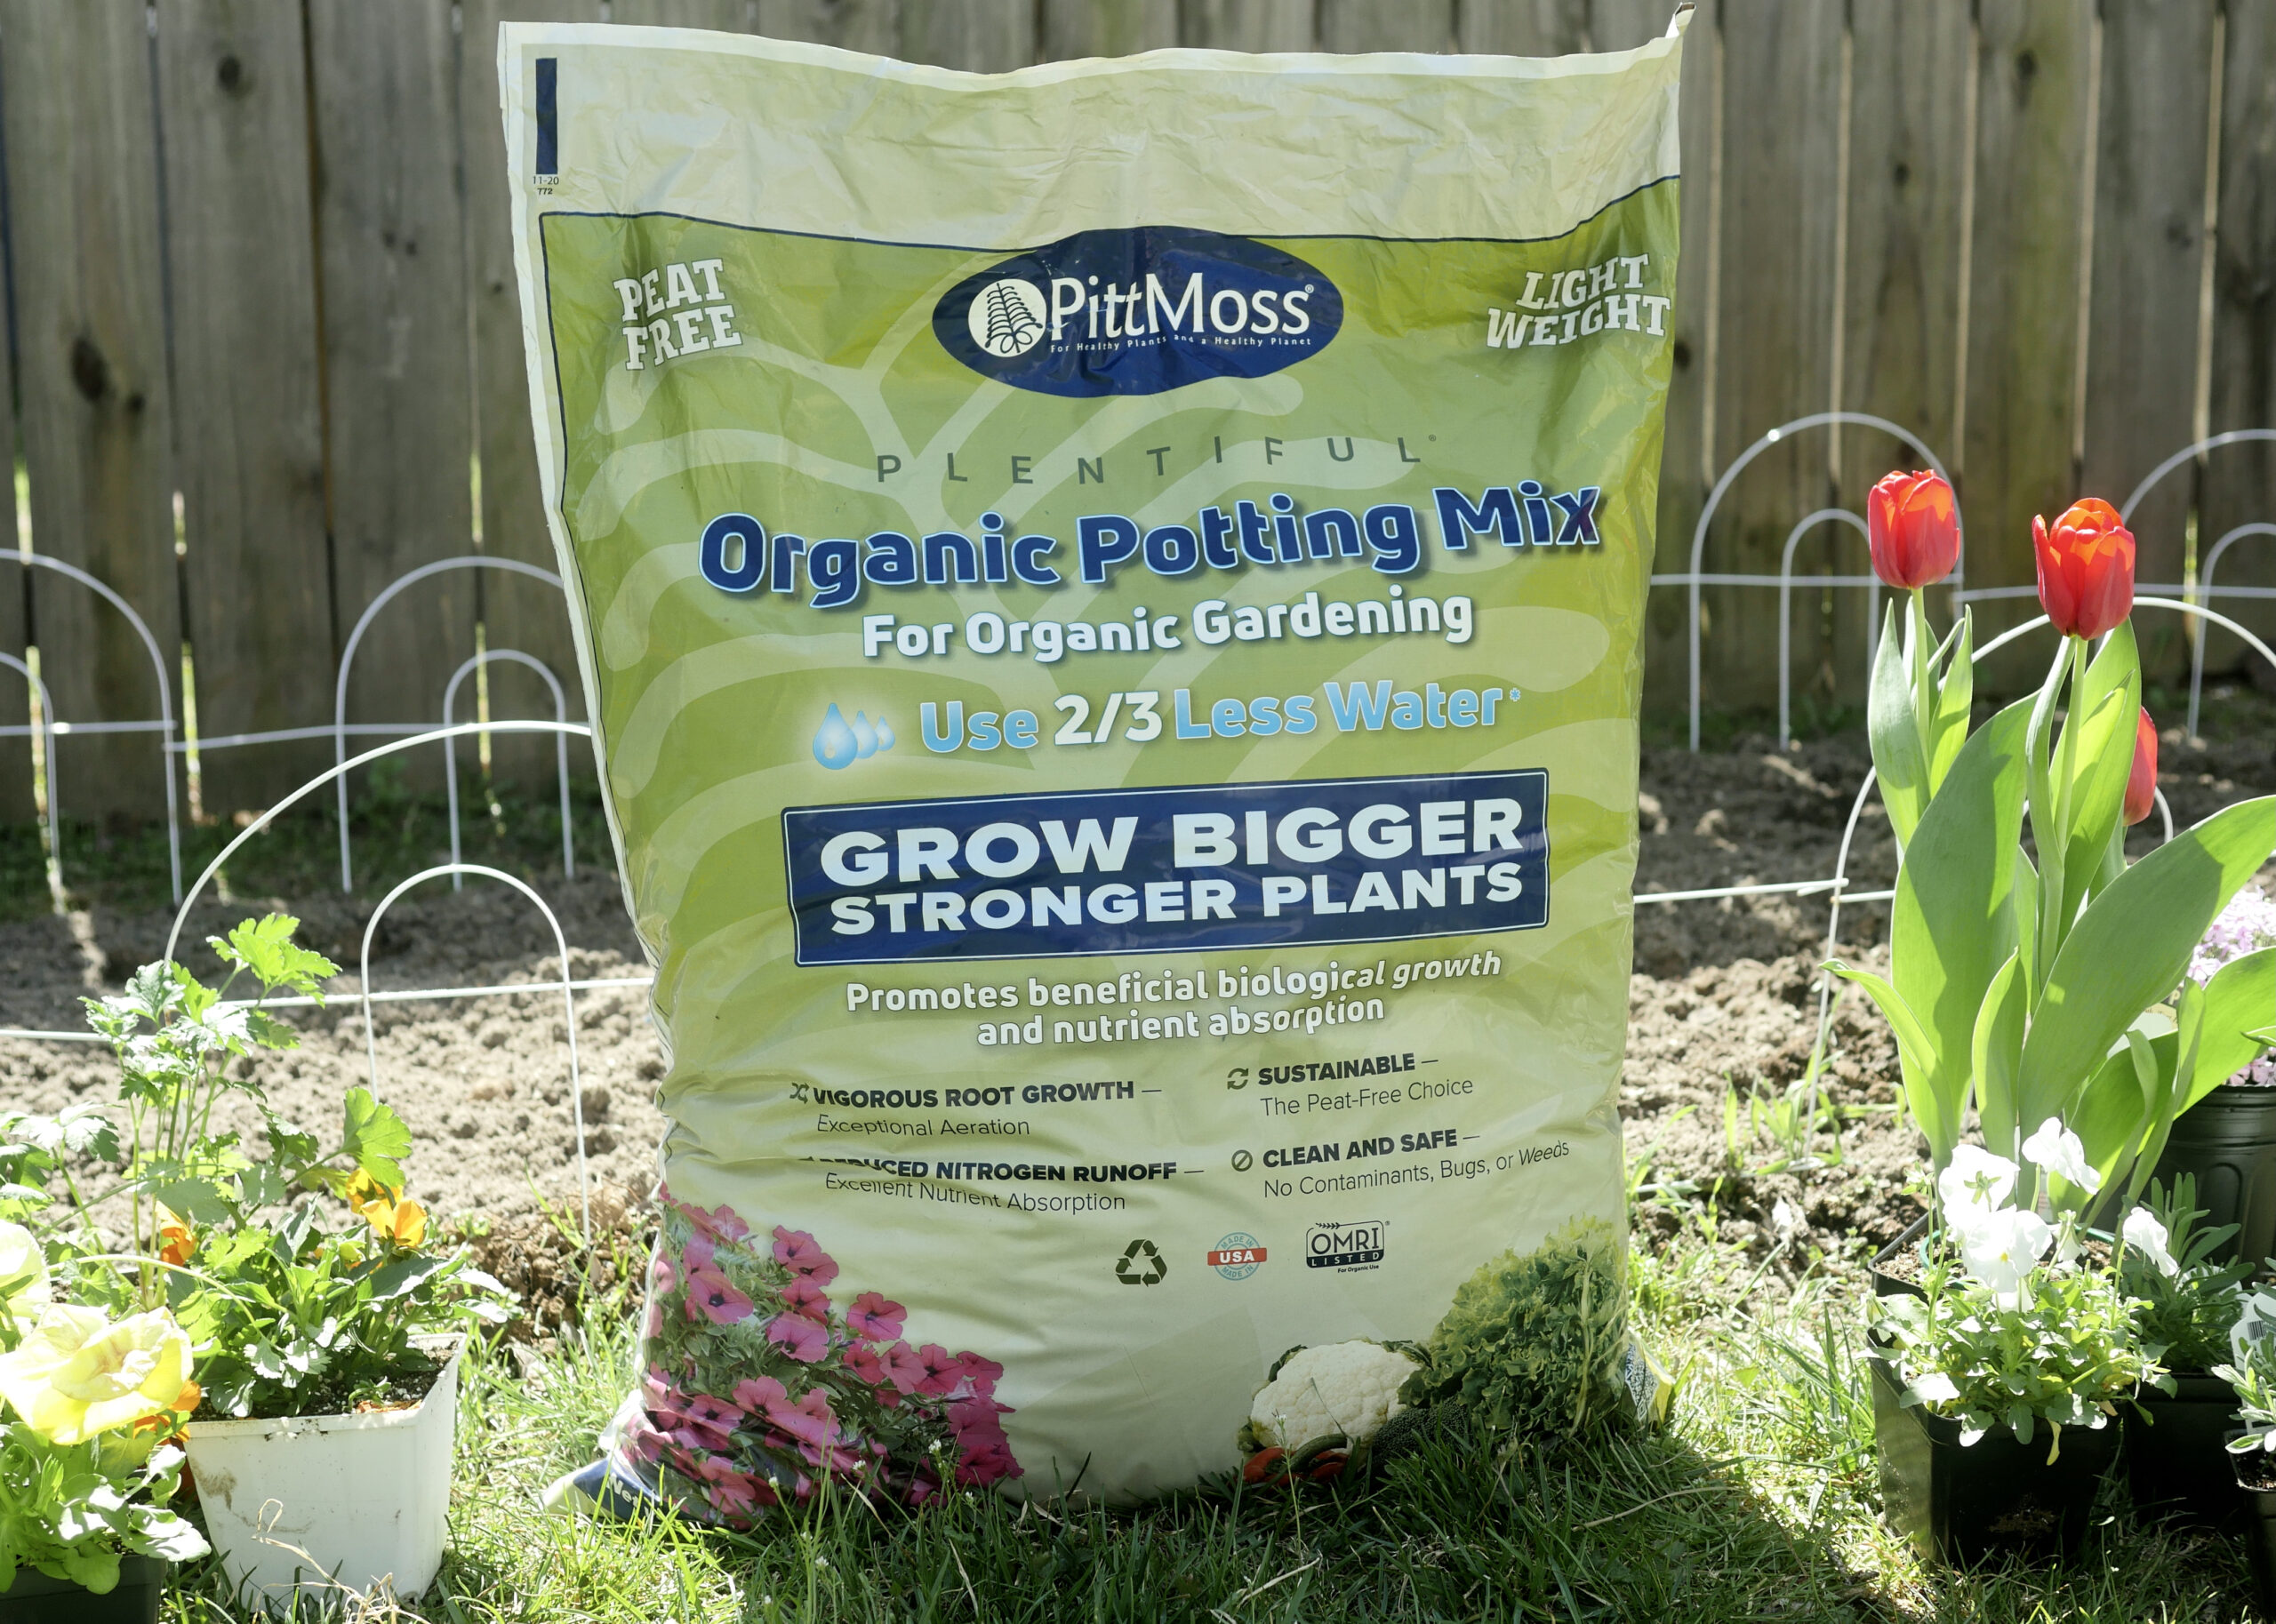 Setting up our Garden with PittMoss Organic Potting Mix